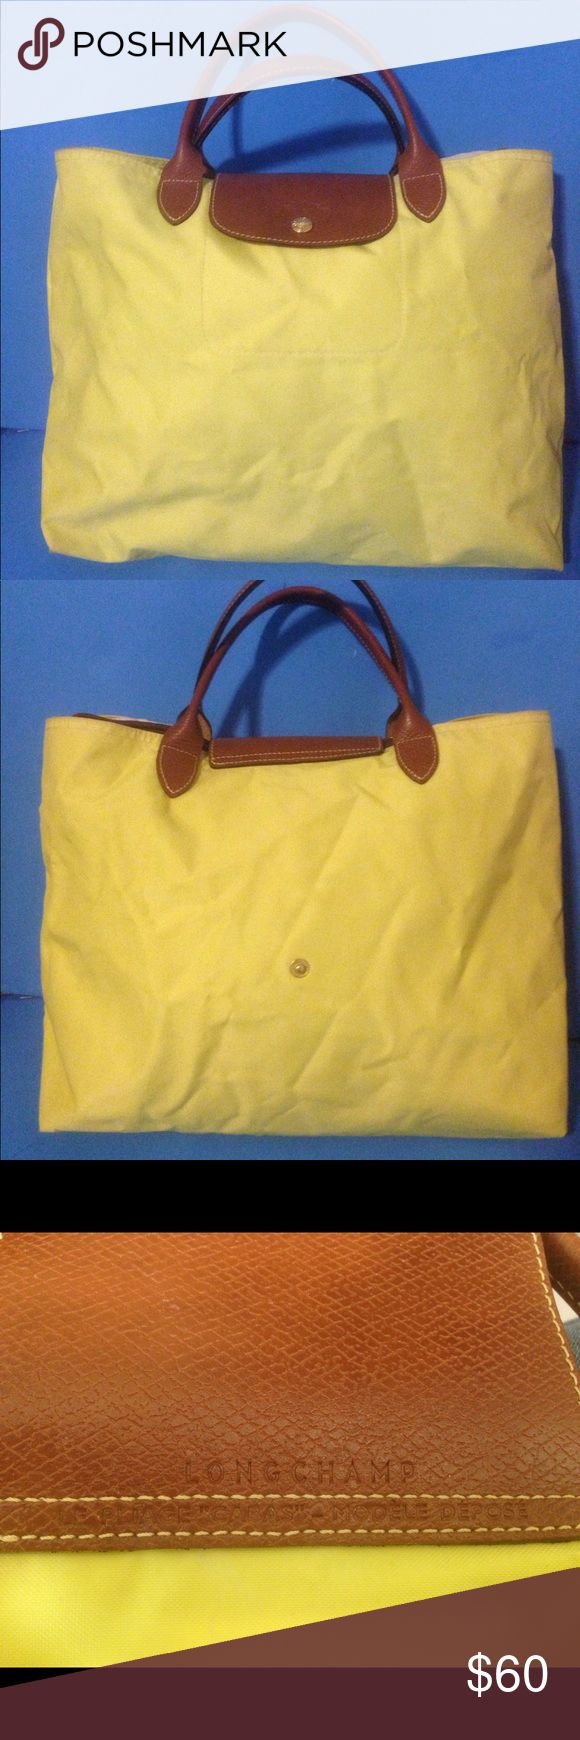 "LONGCHAMP Le Pliage ""Lemon"" Nylon medium Tote bag In good used condition few marks inside. Other then that still a great a bag. ""Note""  this has no zipper it's a snap on. Questions please ask. Thank you. Longchamp Bags Totes"